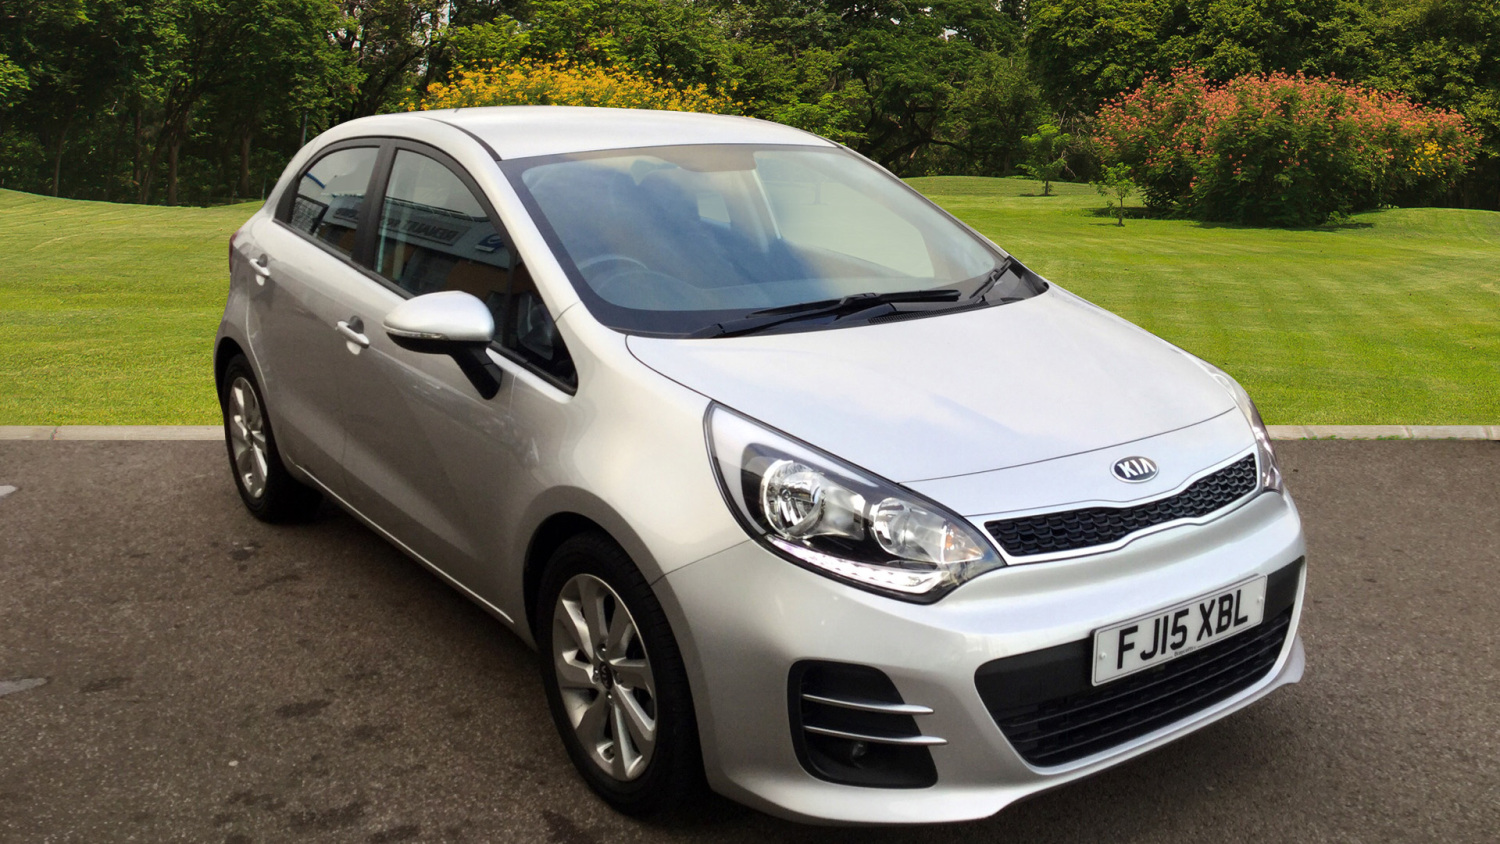 used kia rio 1 4 crdi 2 5dr diesel hatchback for sale bristol street motors. Black Bedroom Furniture Sets. Home Design Ideas